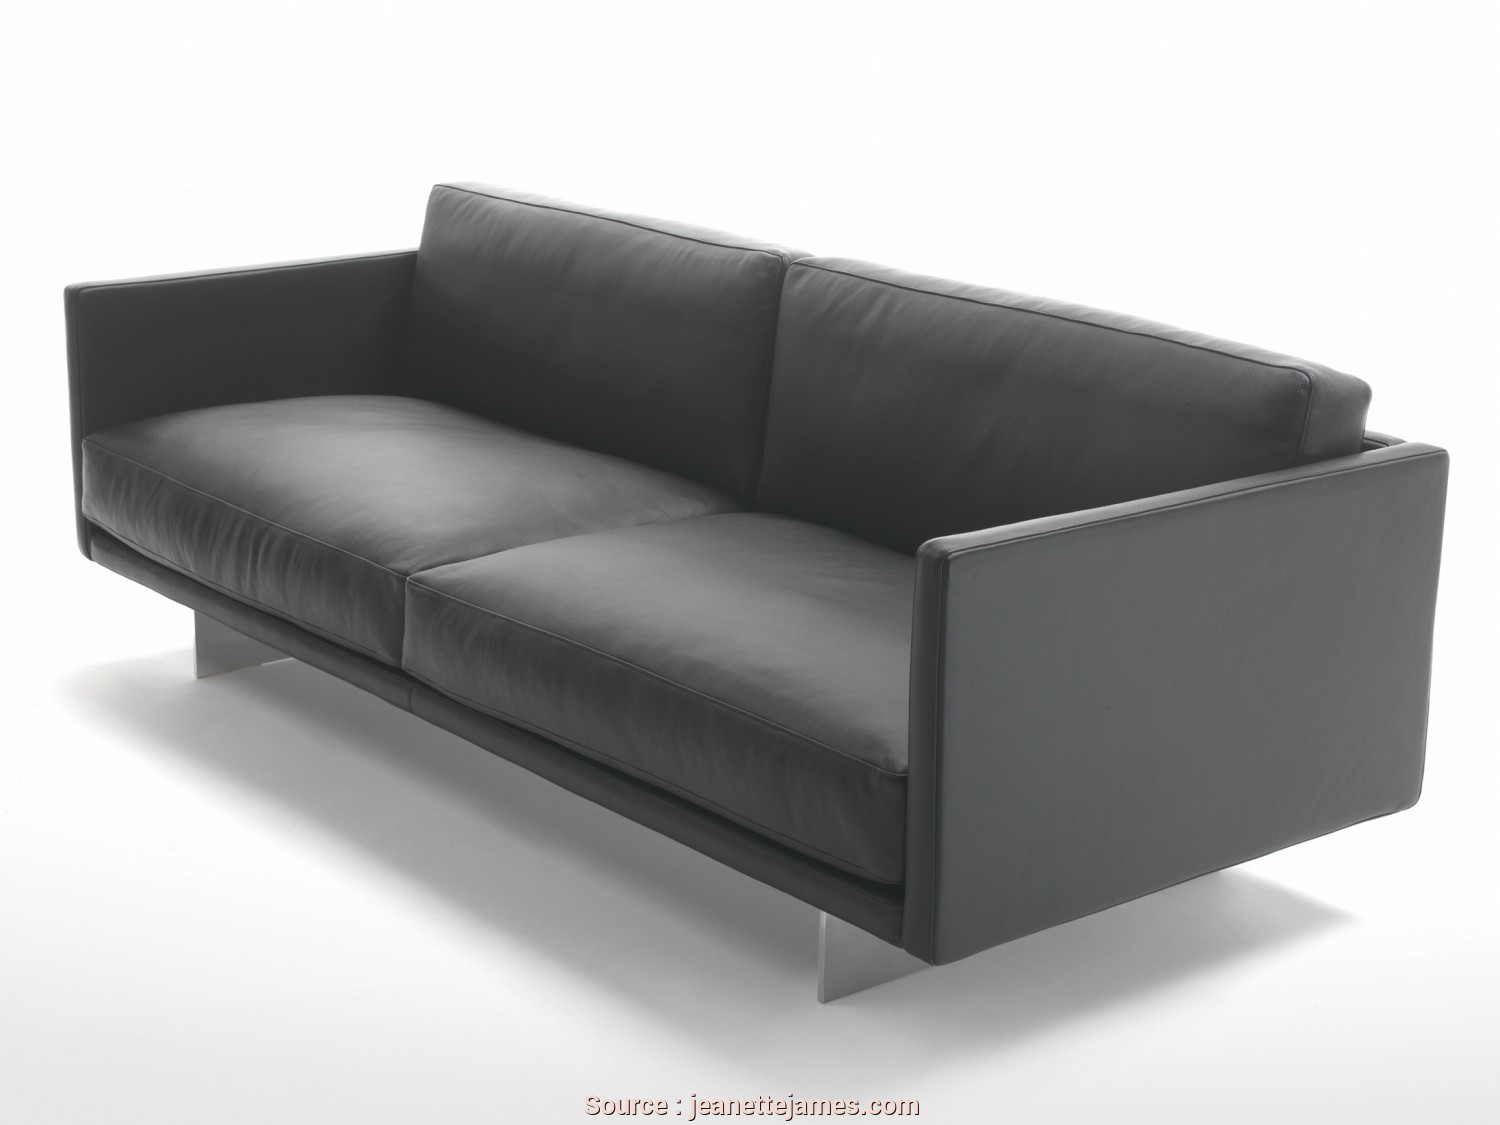 Ikea Klippan Sofa Leather, Delizioso Furniture:, Ikea Karlstad Couch, Ikea Couches